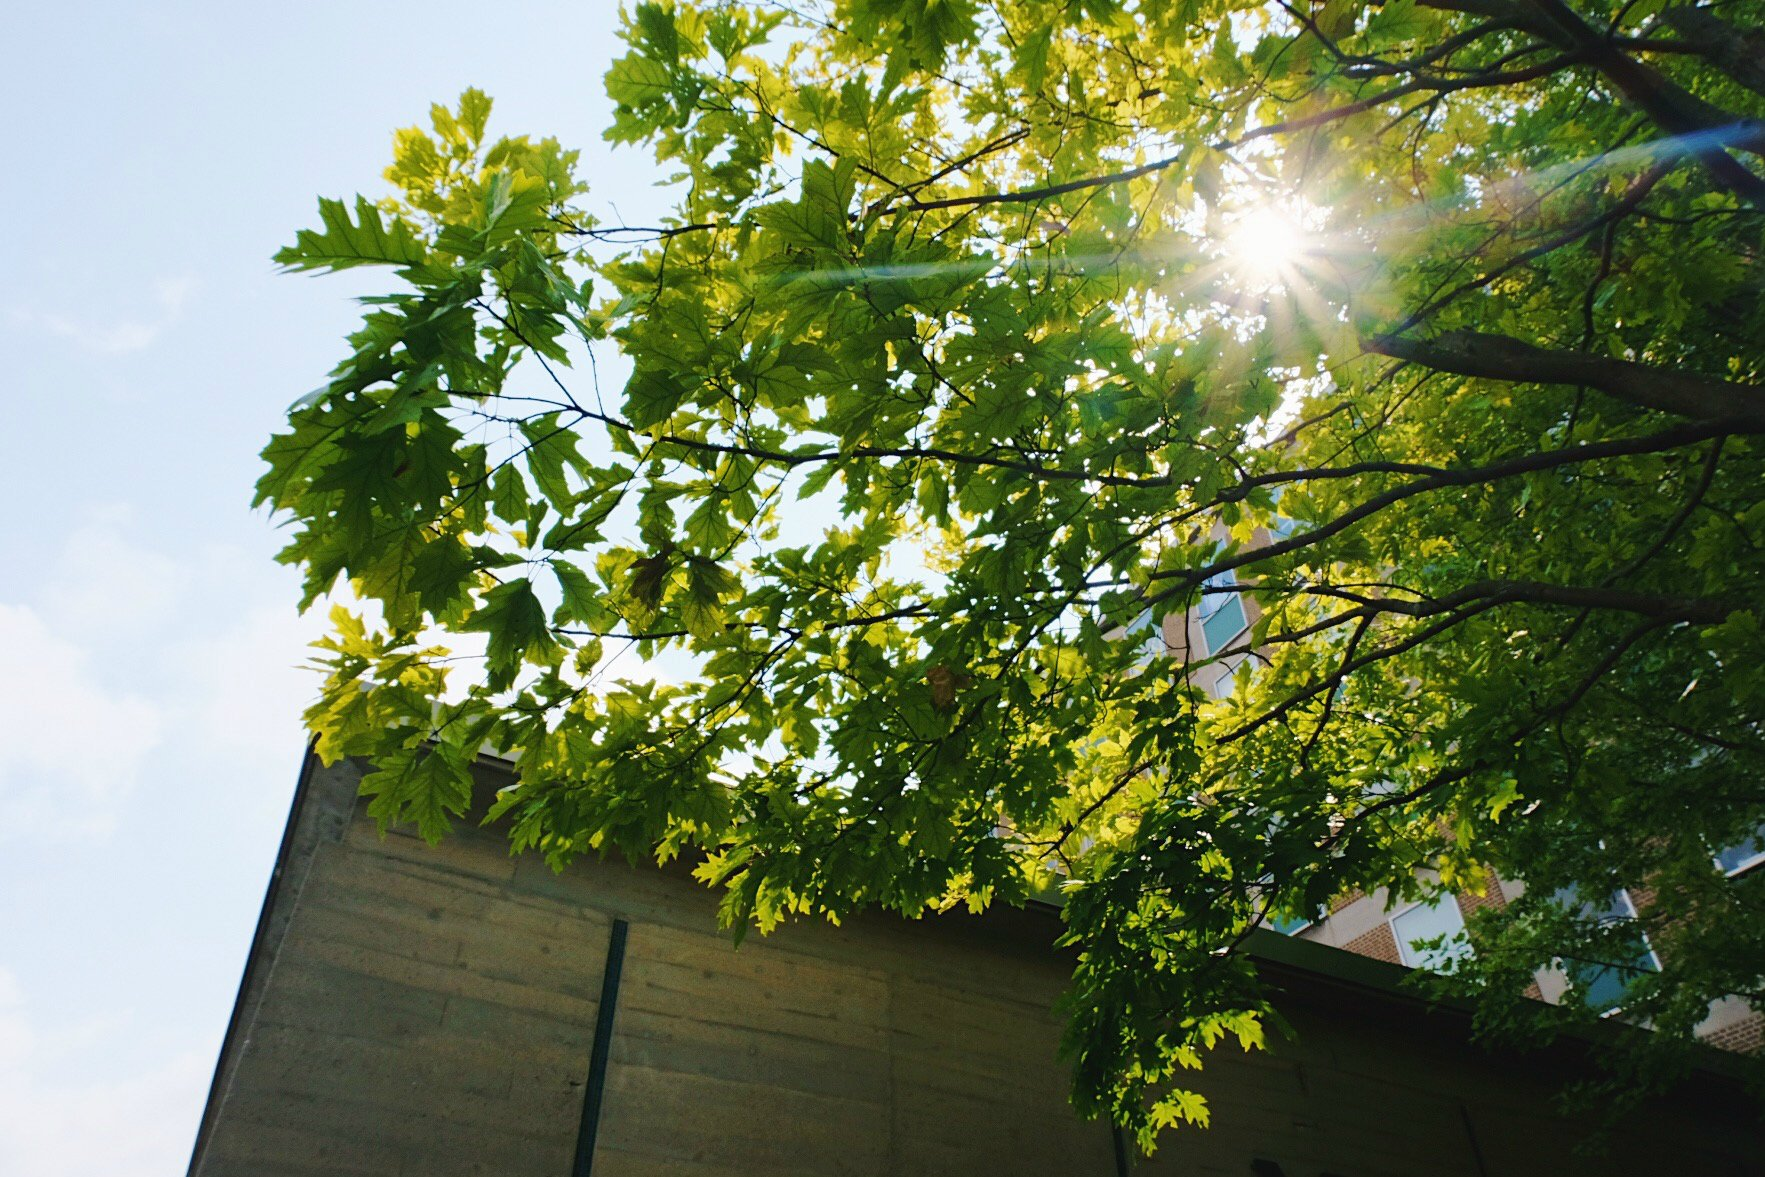 Photo looking up at leaves and a building